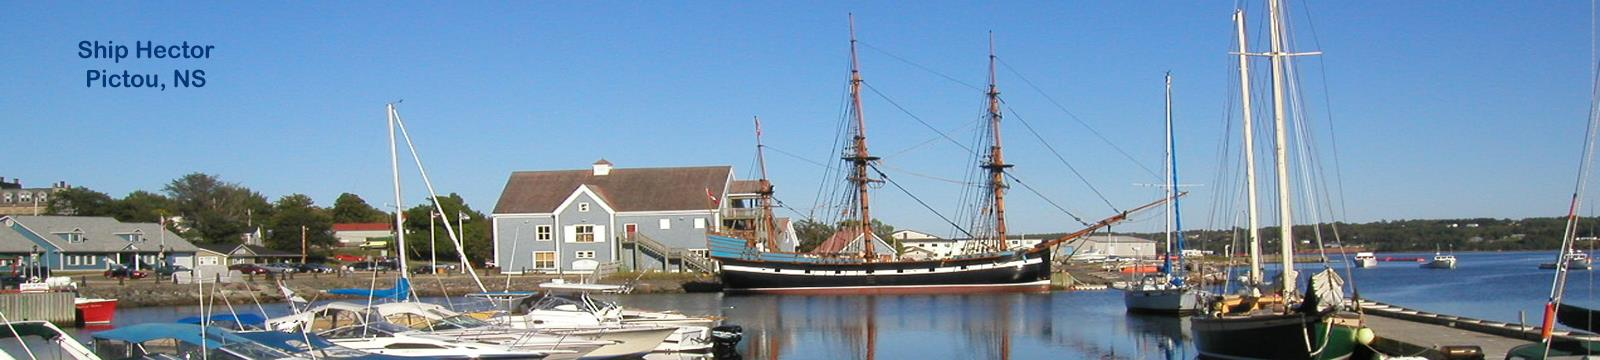 Ship Hector, Pictou